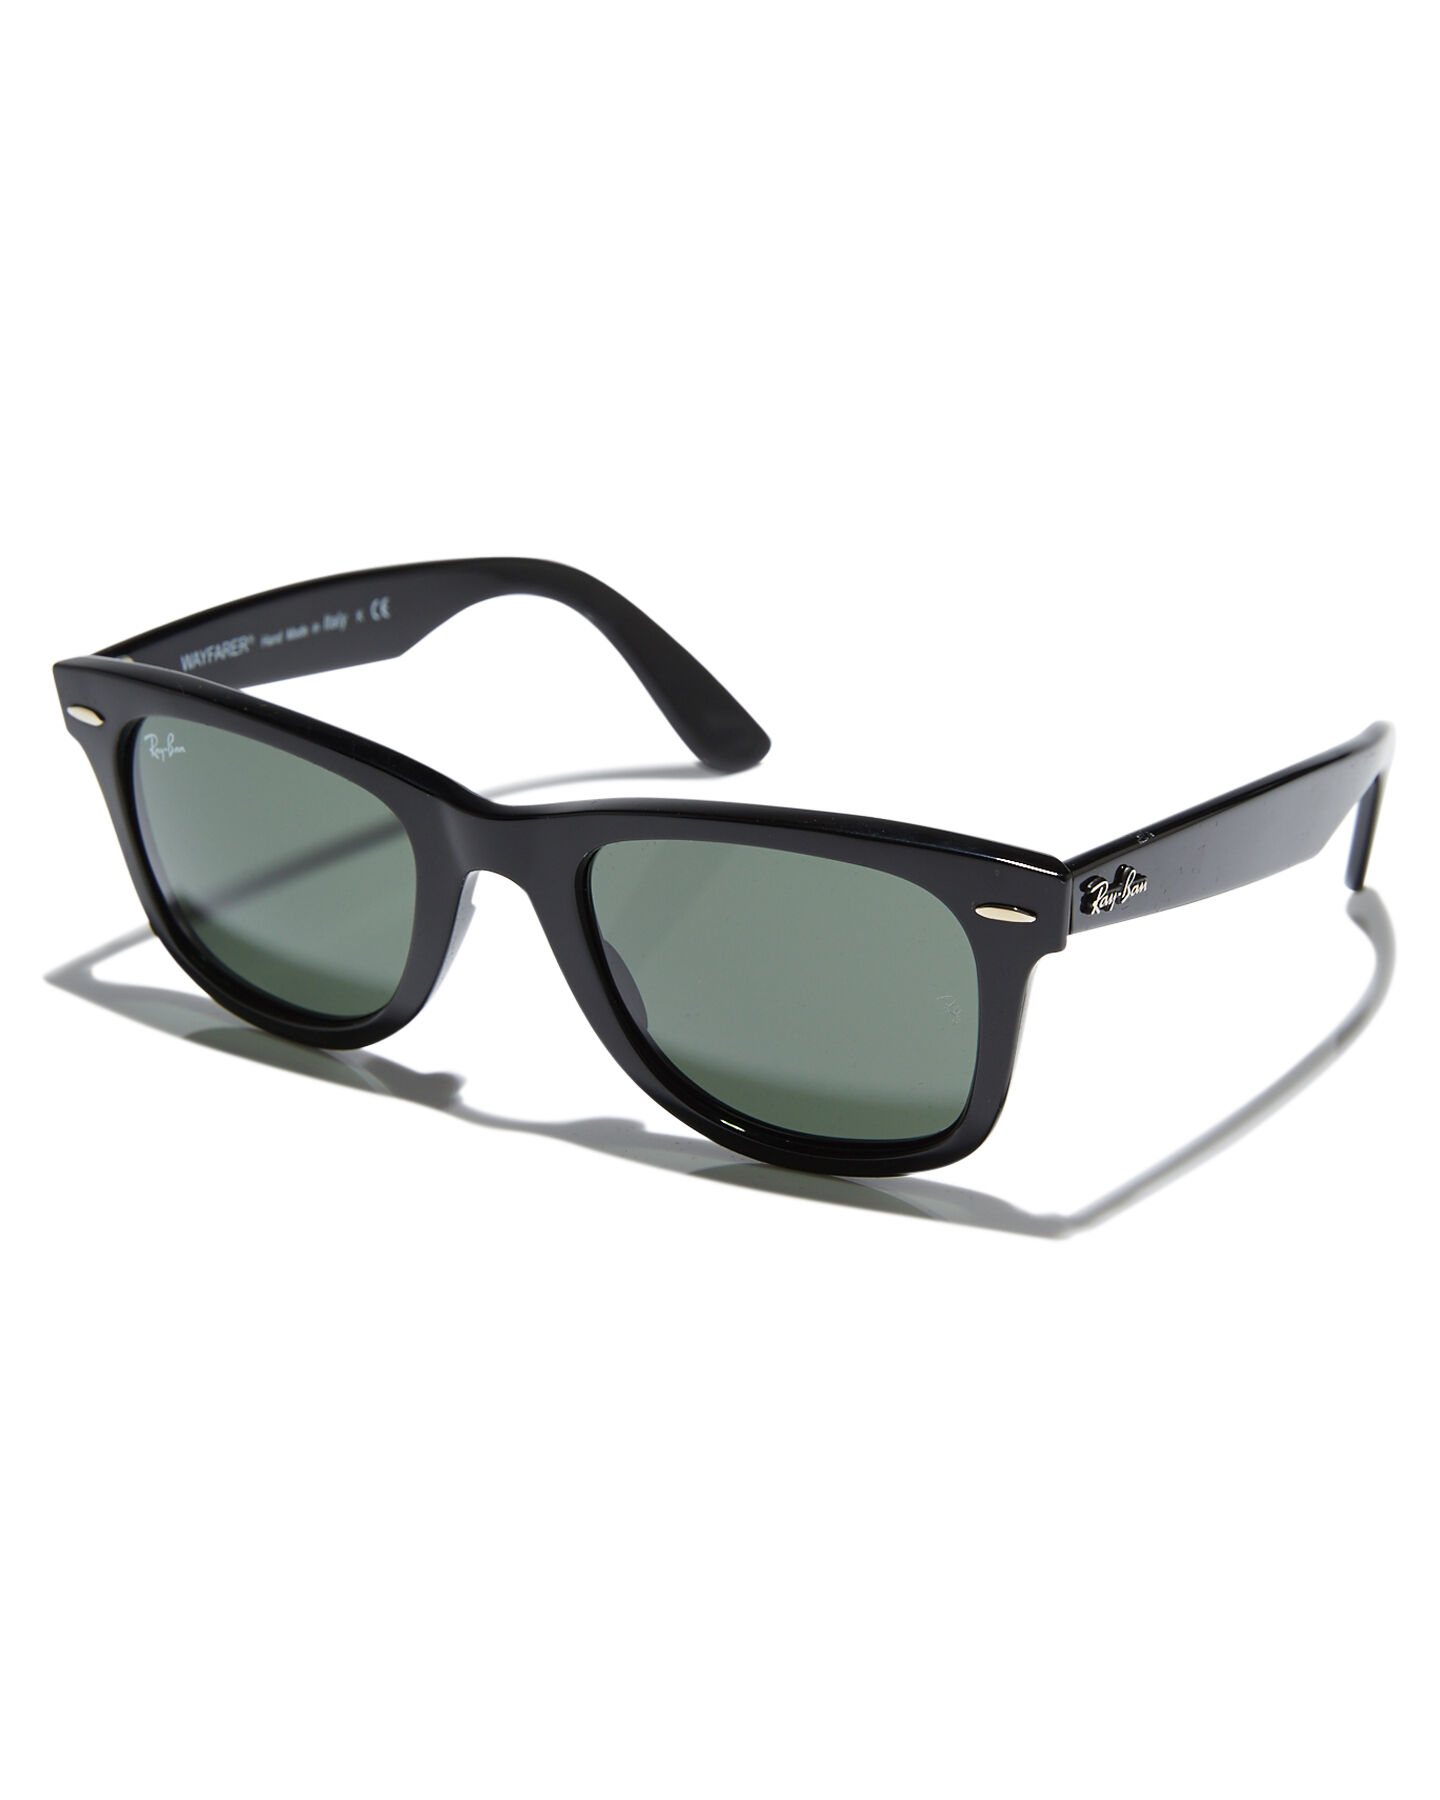 4cde0cb803 ... clearance black mens accessories ray ban sunglasses 0rb4340blk 29577  d58a4